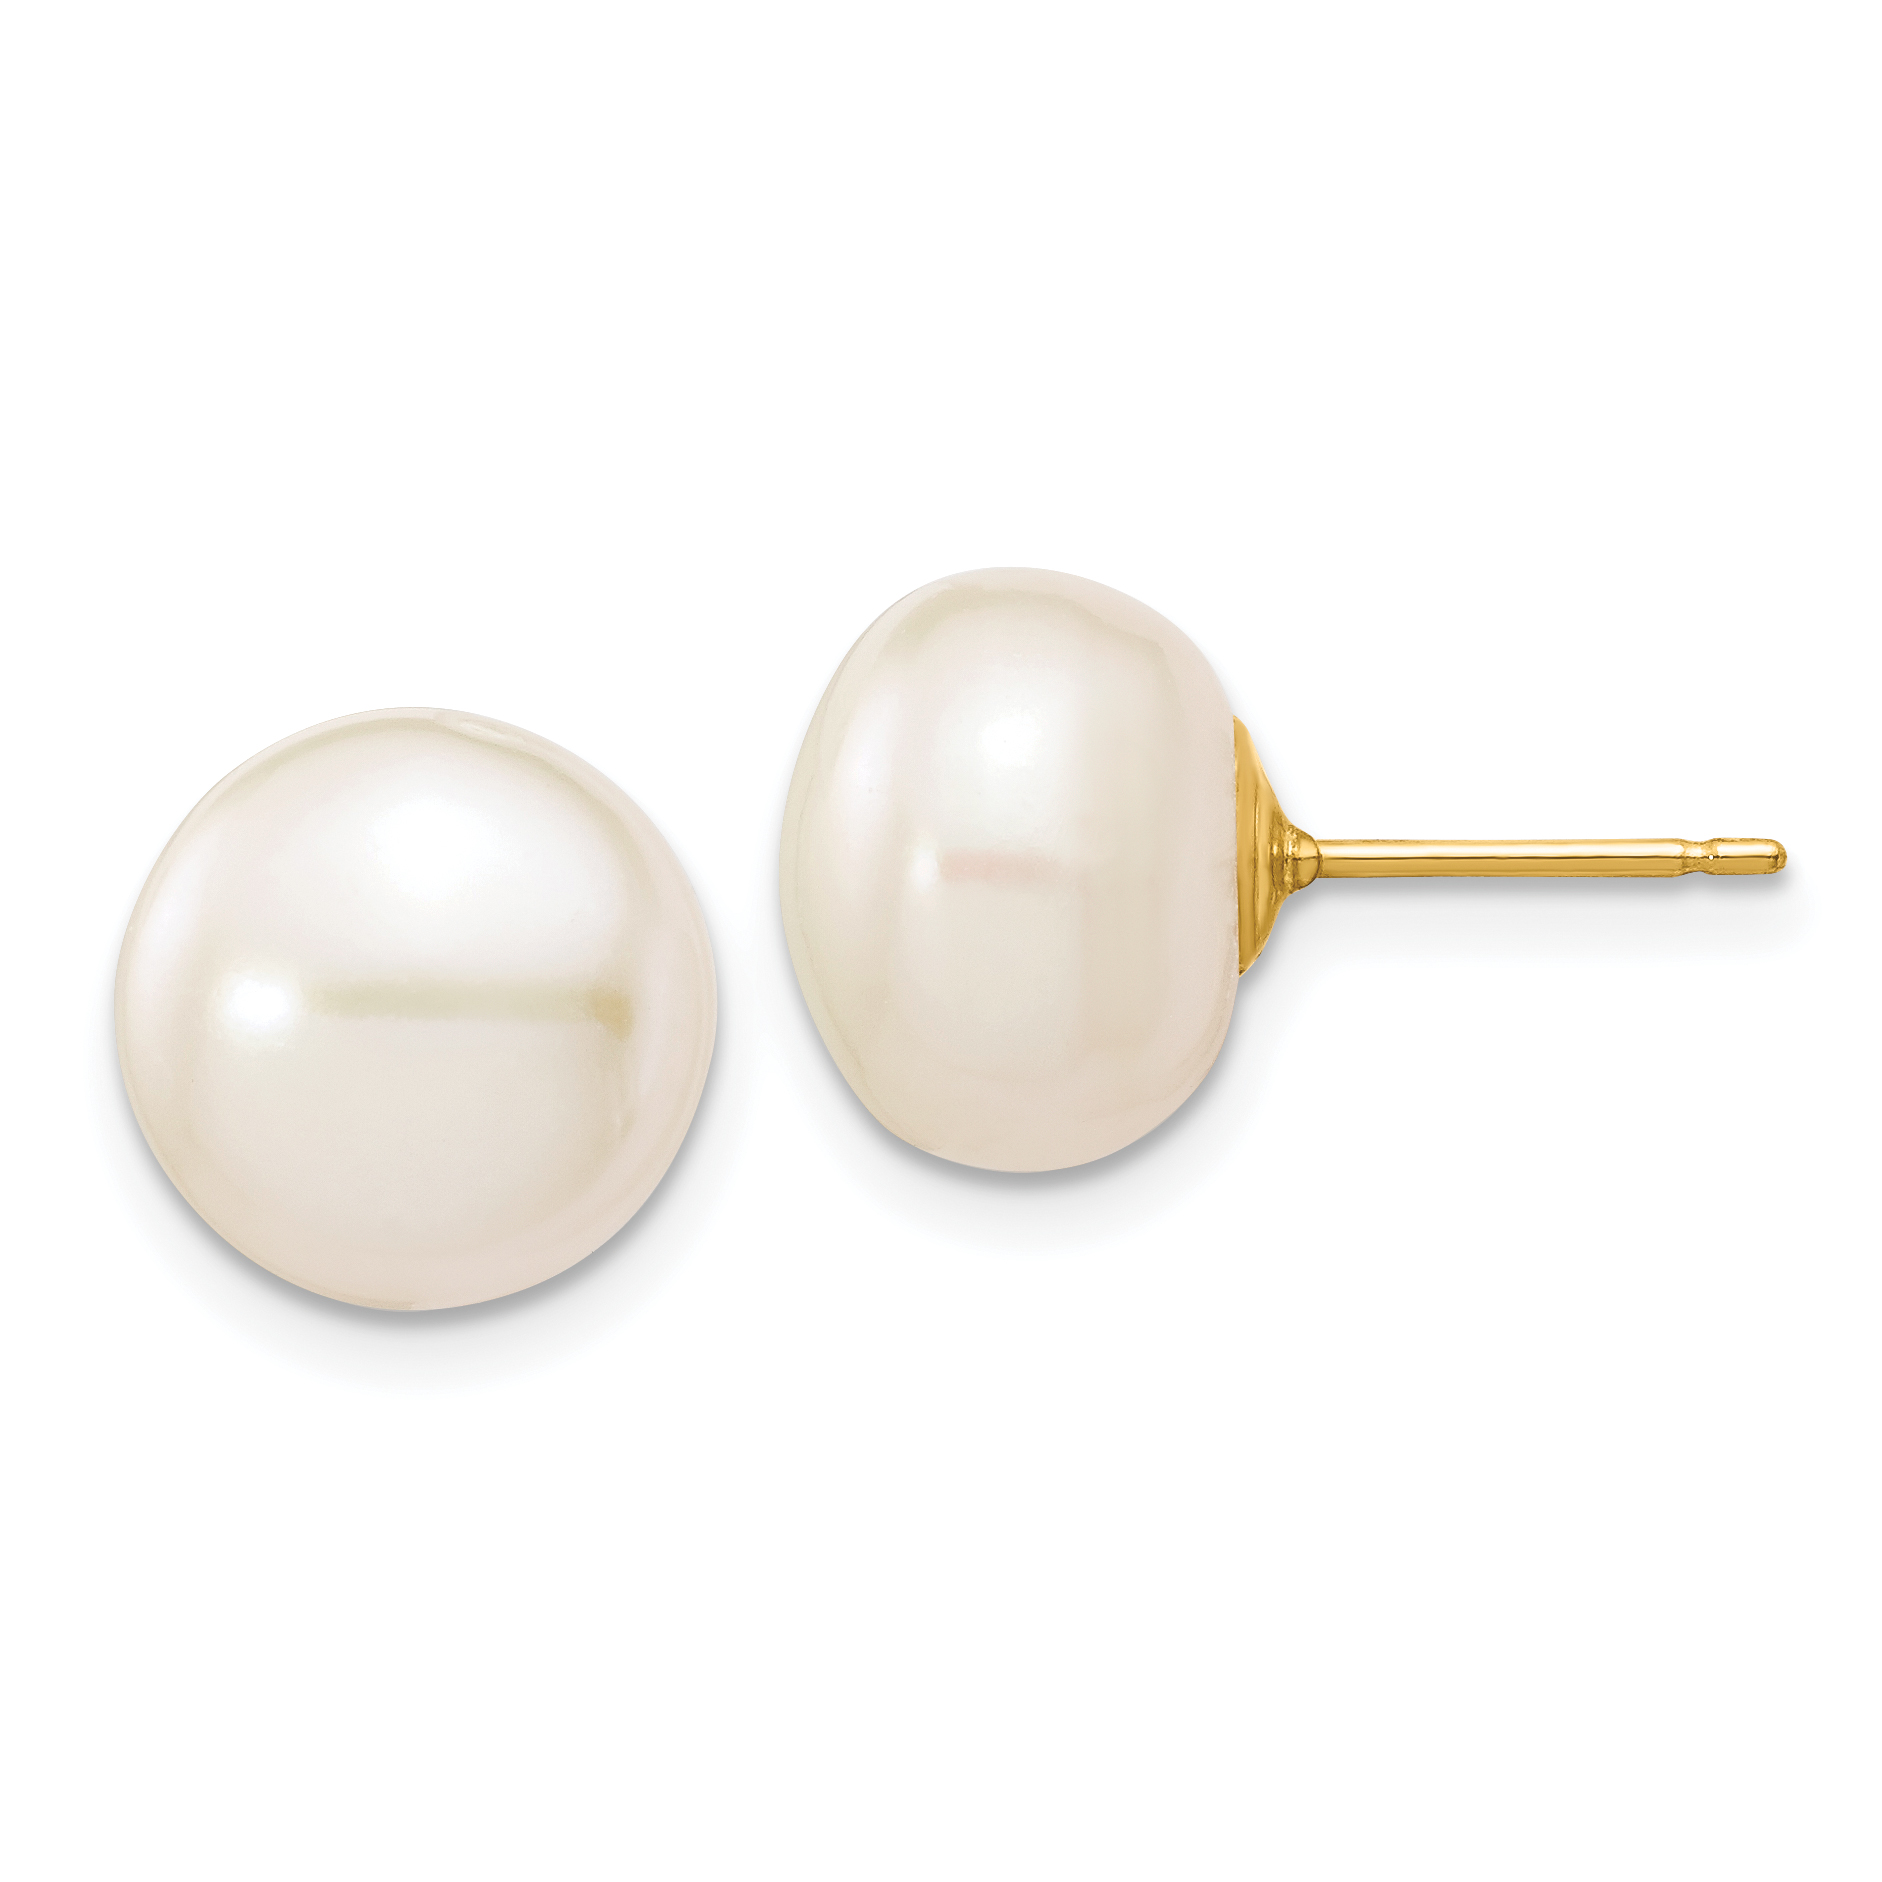 14K Gold White Freshwater Cultured Pearl Button Stud Earrings